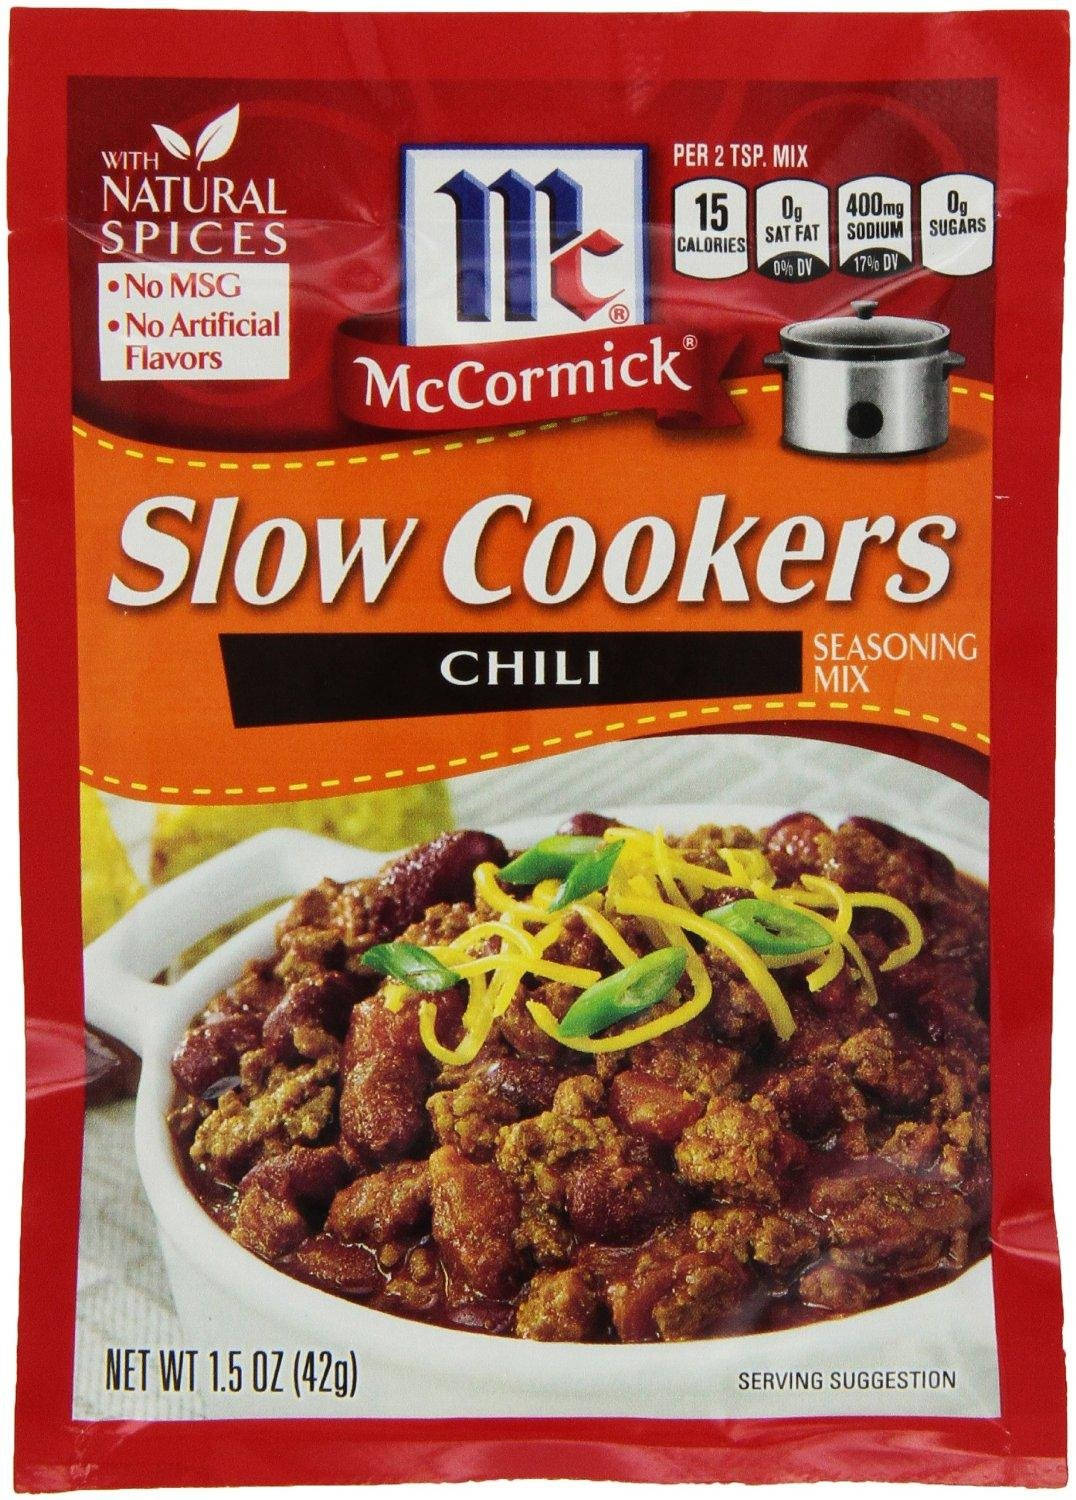 Mccormick Slow Cookers Chili Seasoning Mix 1 5 Oz Packets 4 Pack Buy Online In Brunei At Brunei Desertcart Com Productid 44161362